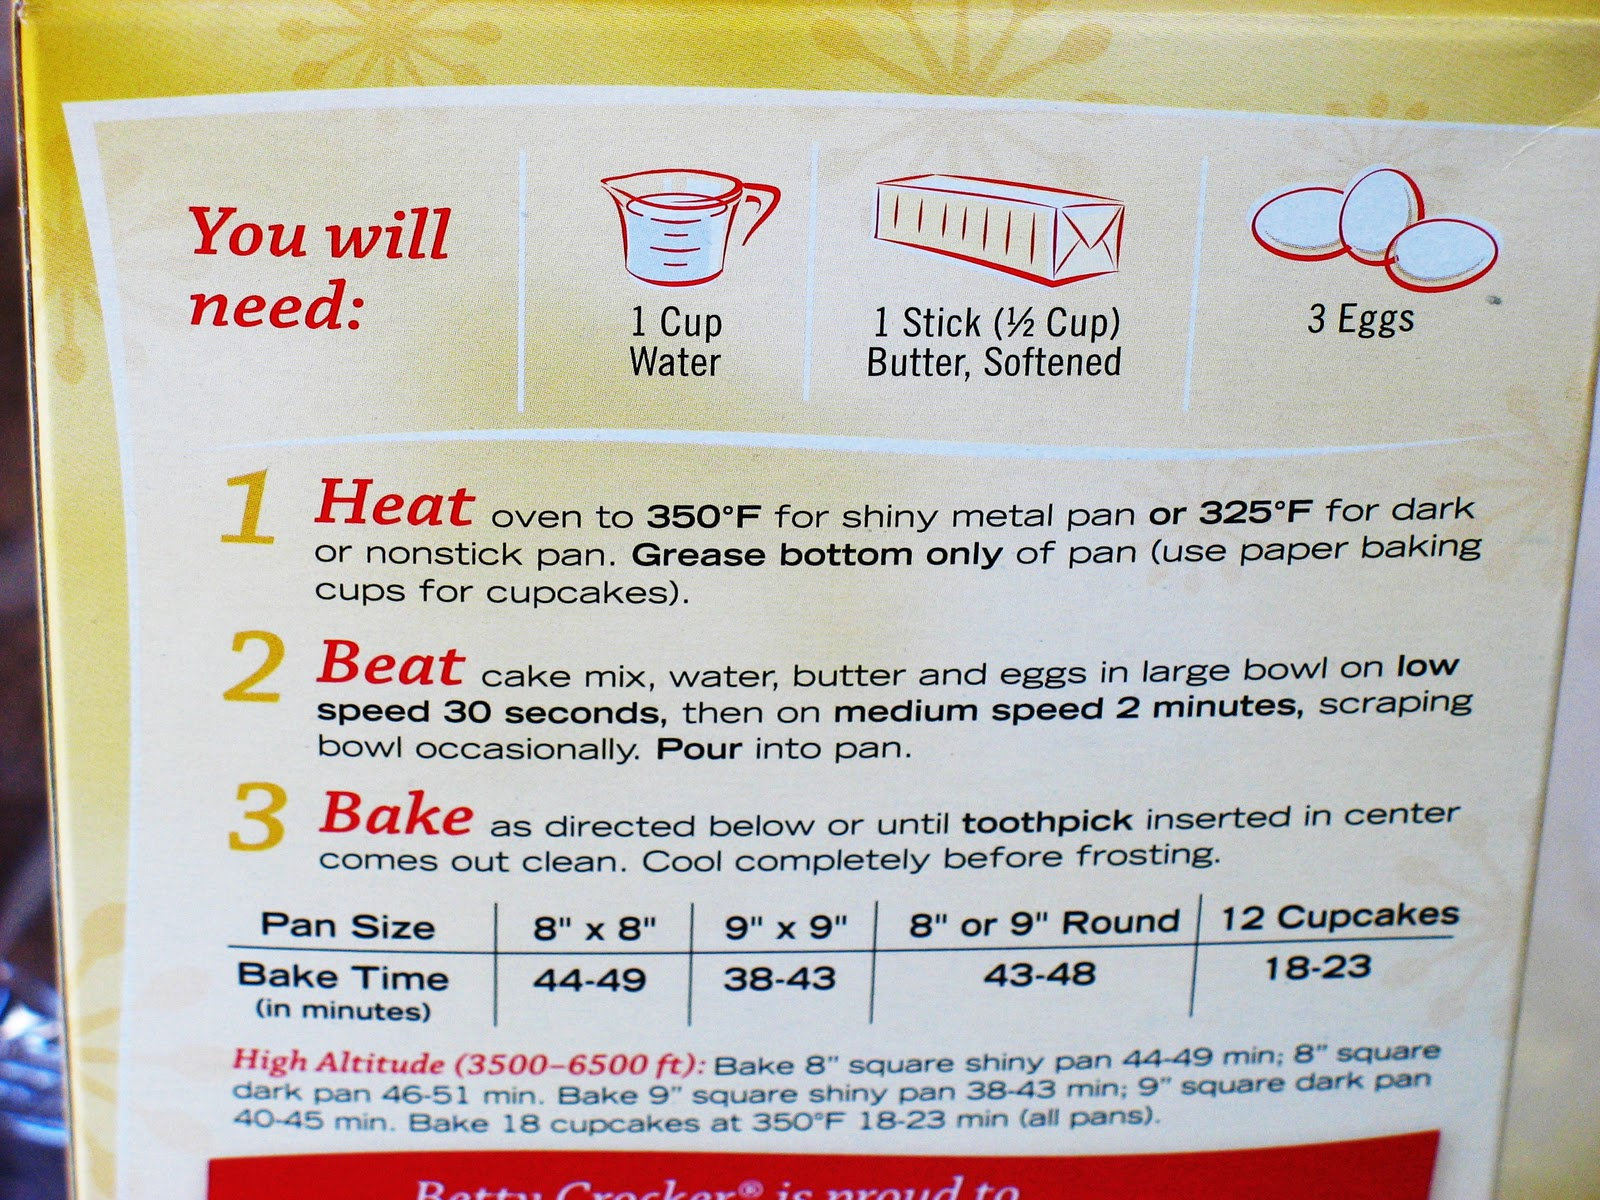 Can You Make Boxed Cake Mix With Only Two Eggs